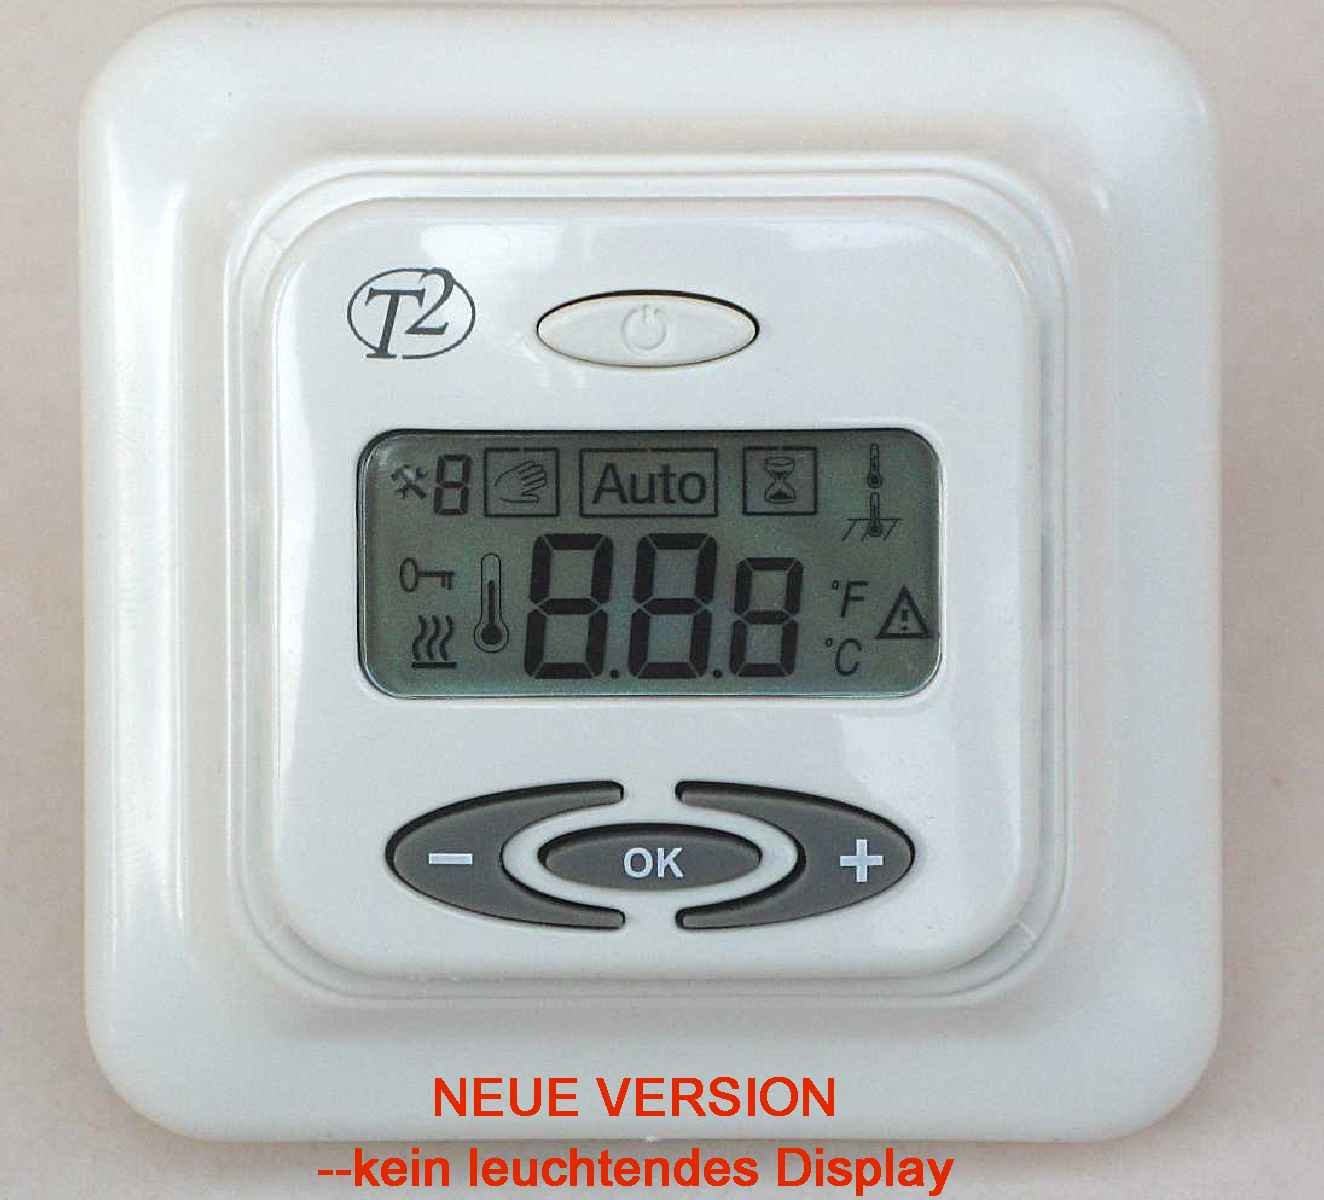 TA T2